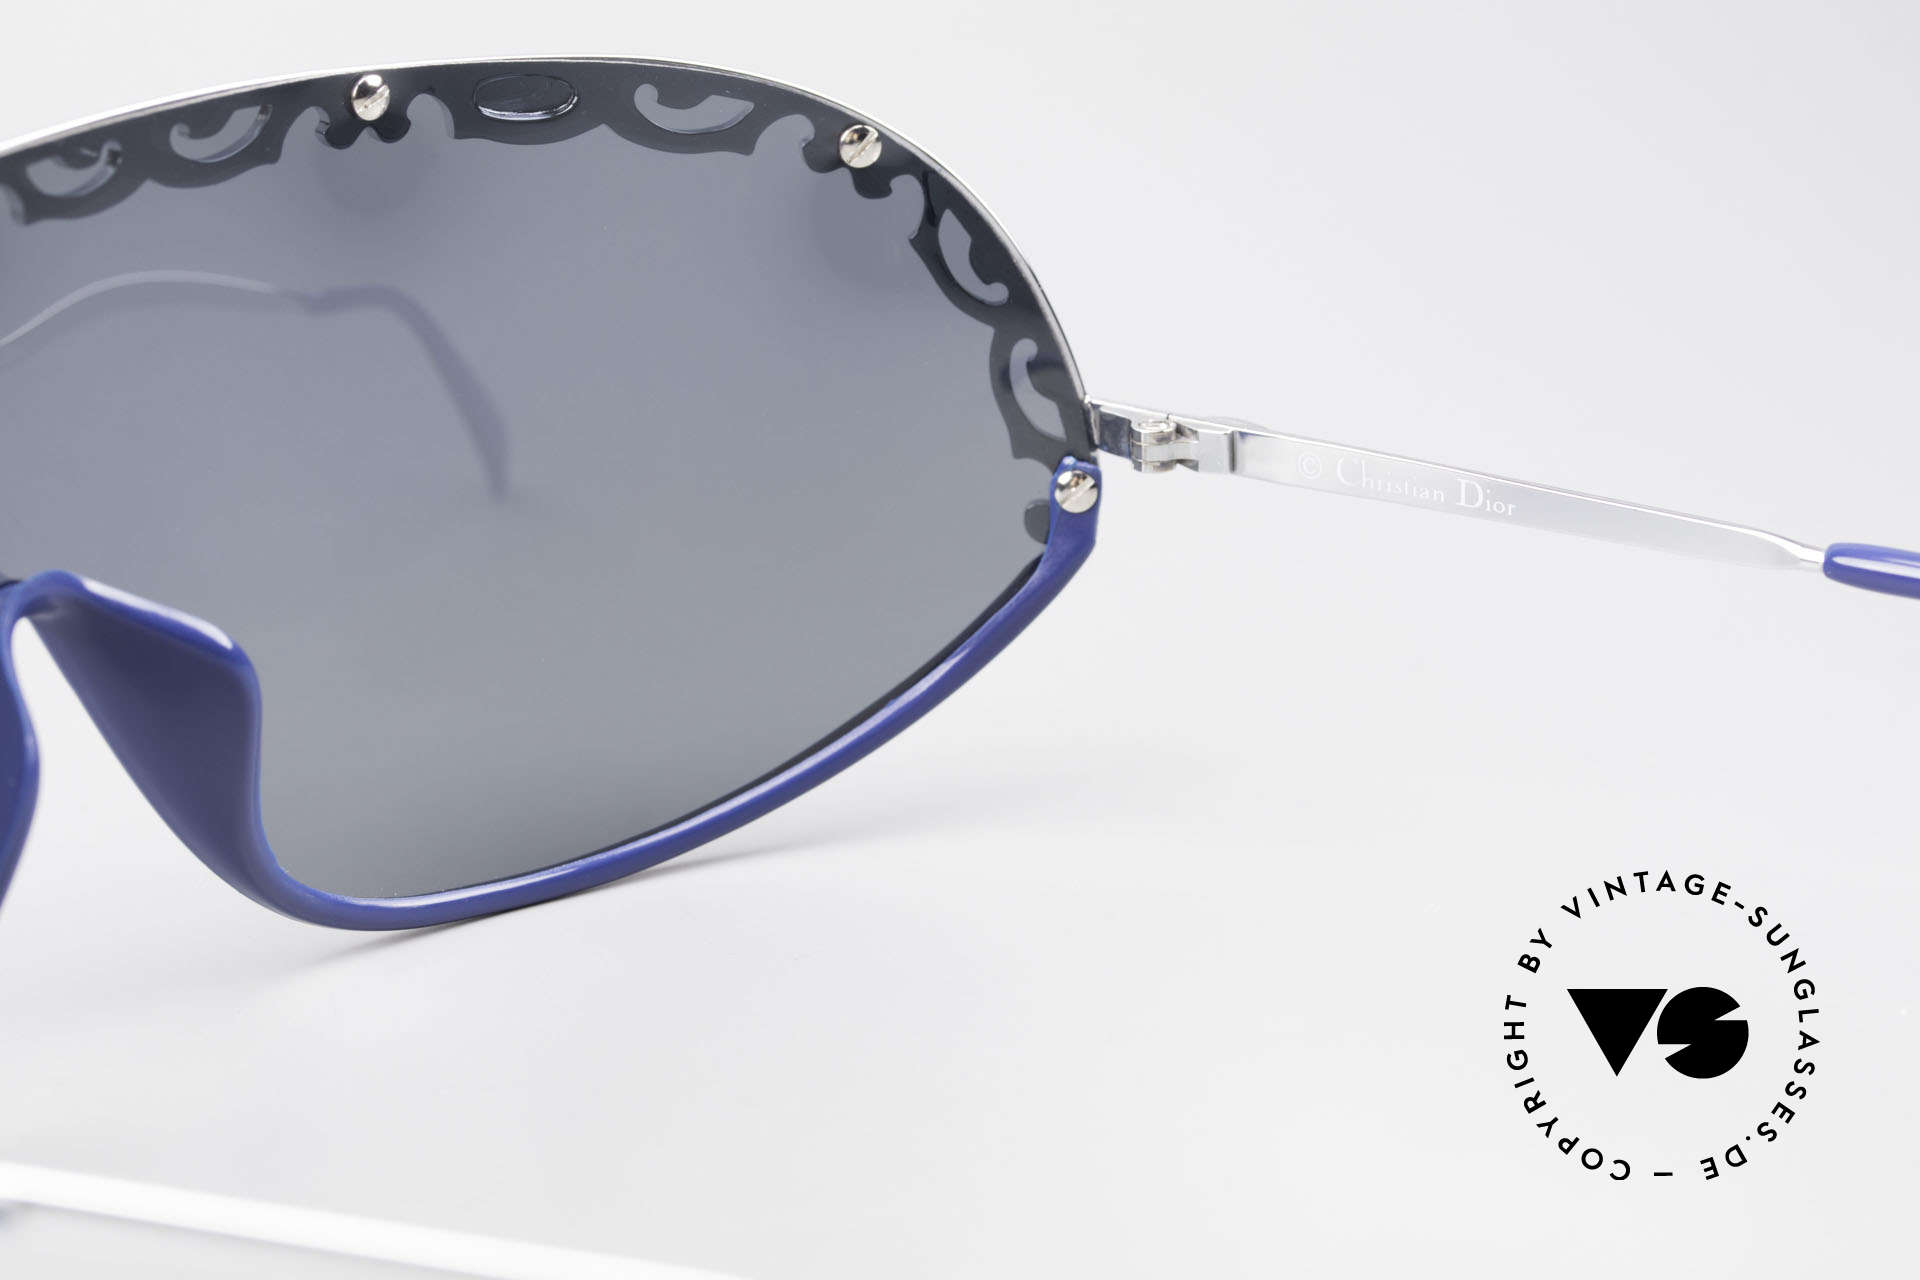 Christian Dior 2501 Panorama View Shades 80s 90s, Size: extra large, Made for Women